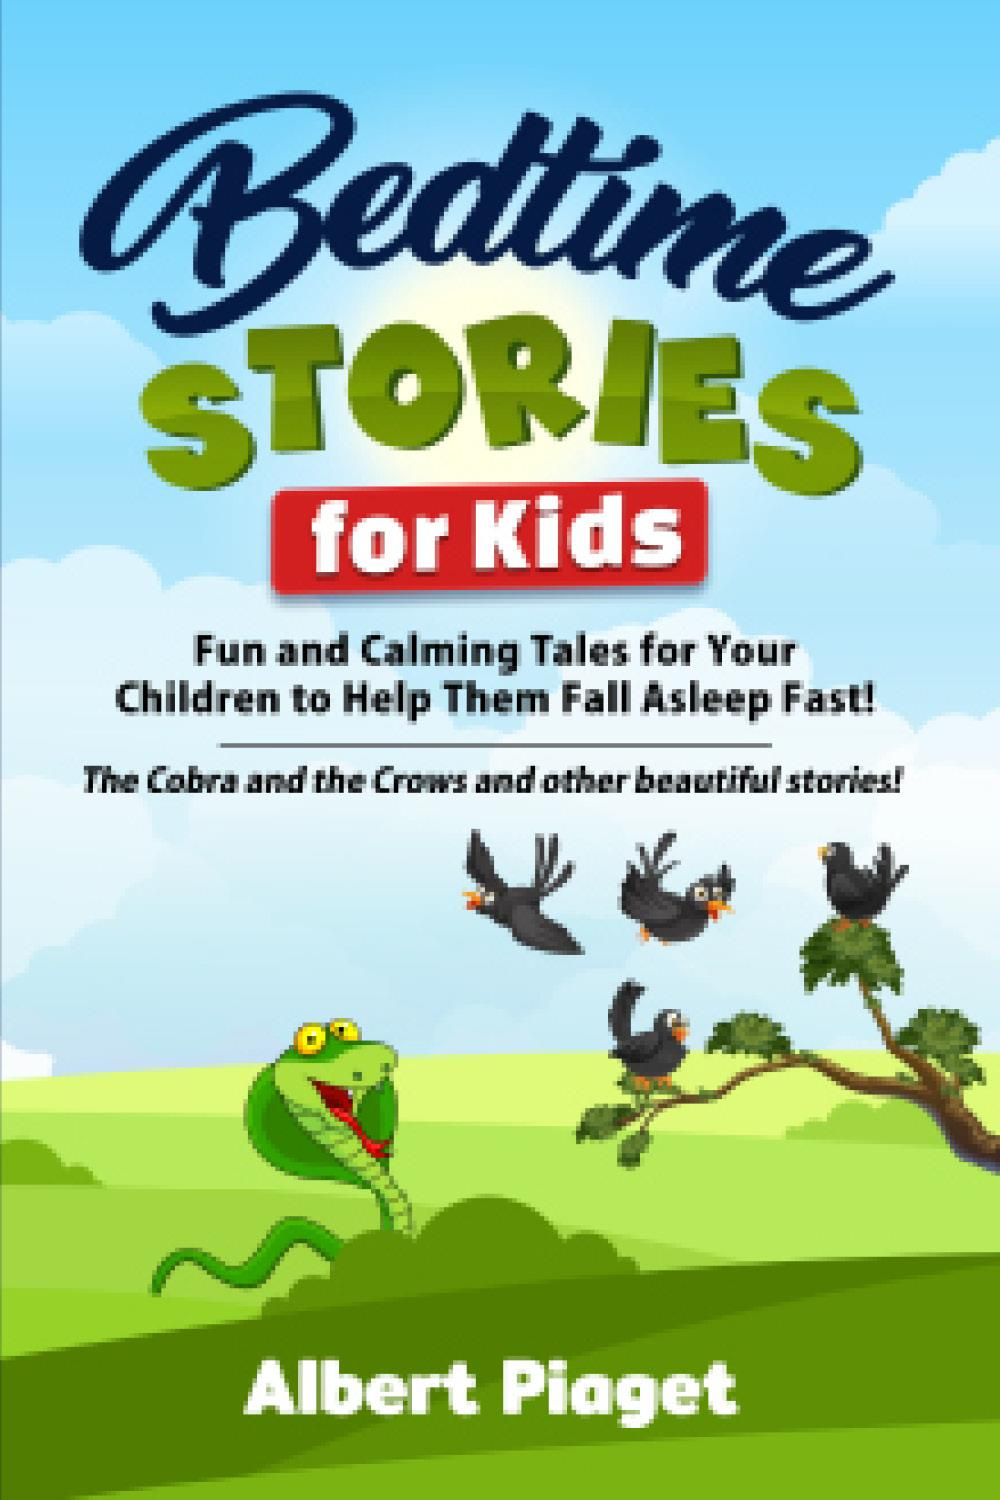 Bedtime Stories for Kids. Fun and Calming Tales for Your Children to Help Them Fall Asleep Fast! The Cobra and the Crows and other beautiful stories!